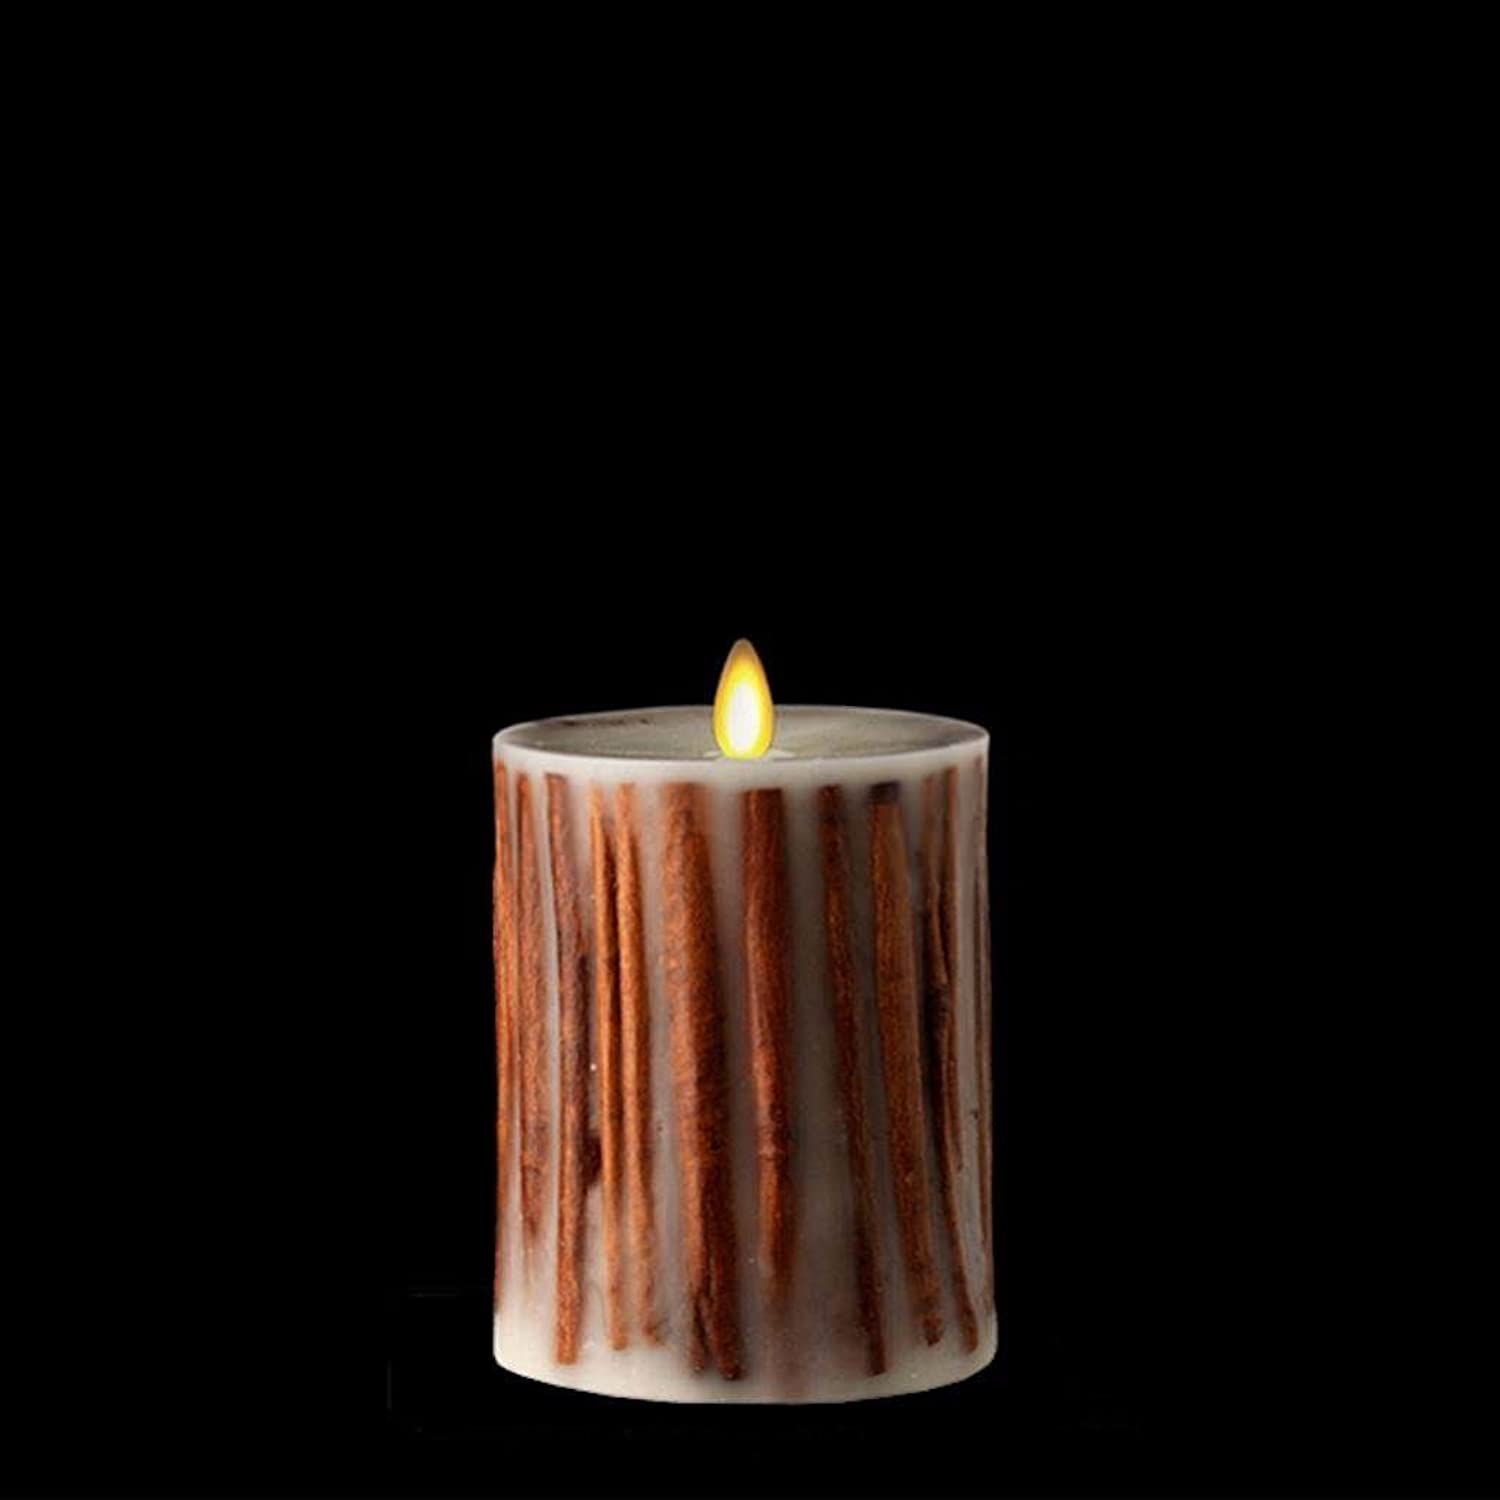 Liown 36070 - 5  Cinnamon Stick Ivory LED Wax Battery Operated Pillar Candle with Timer